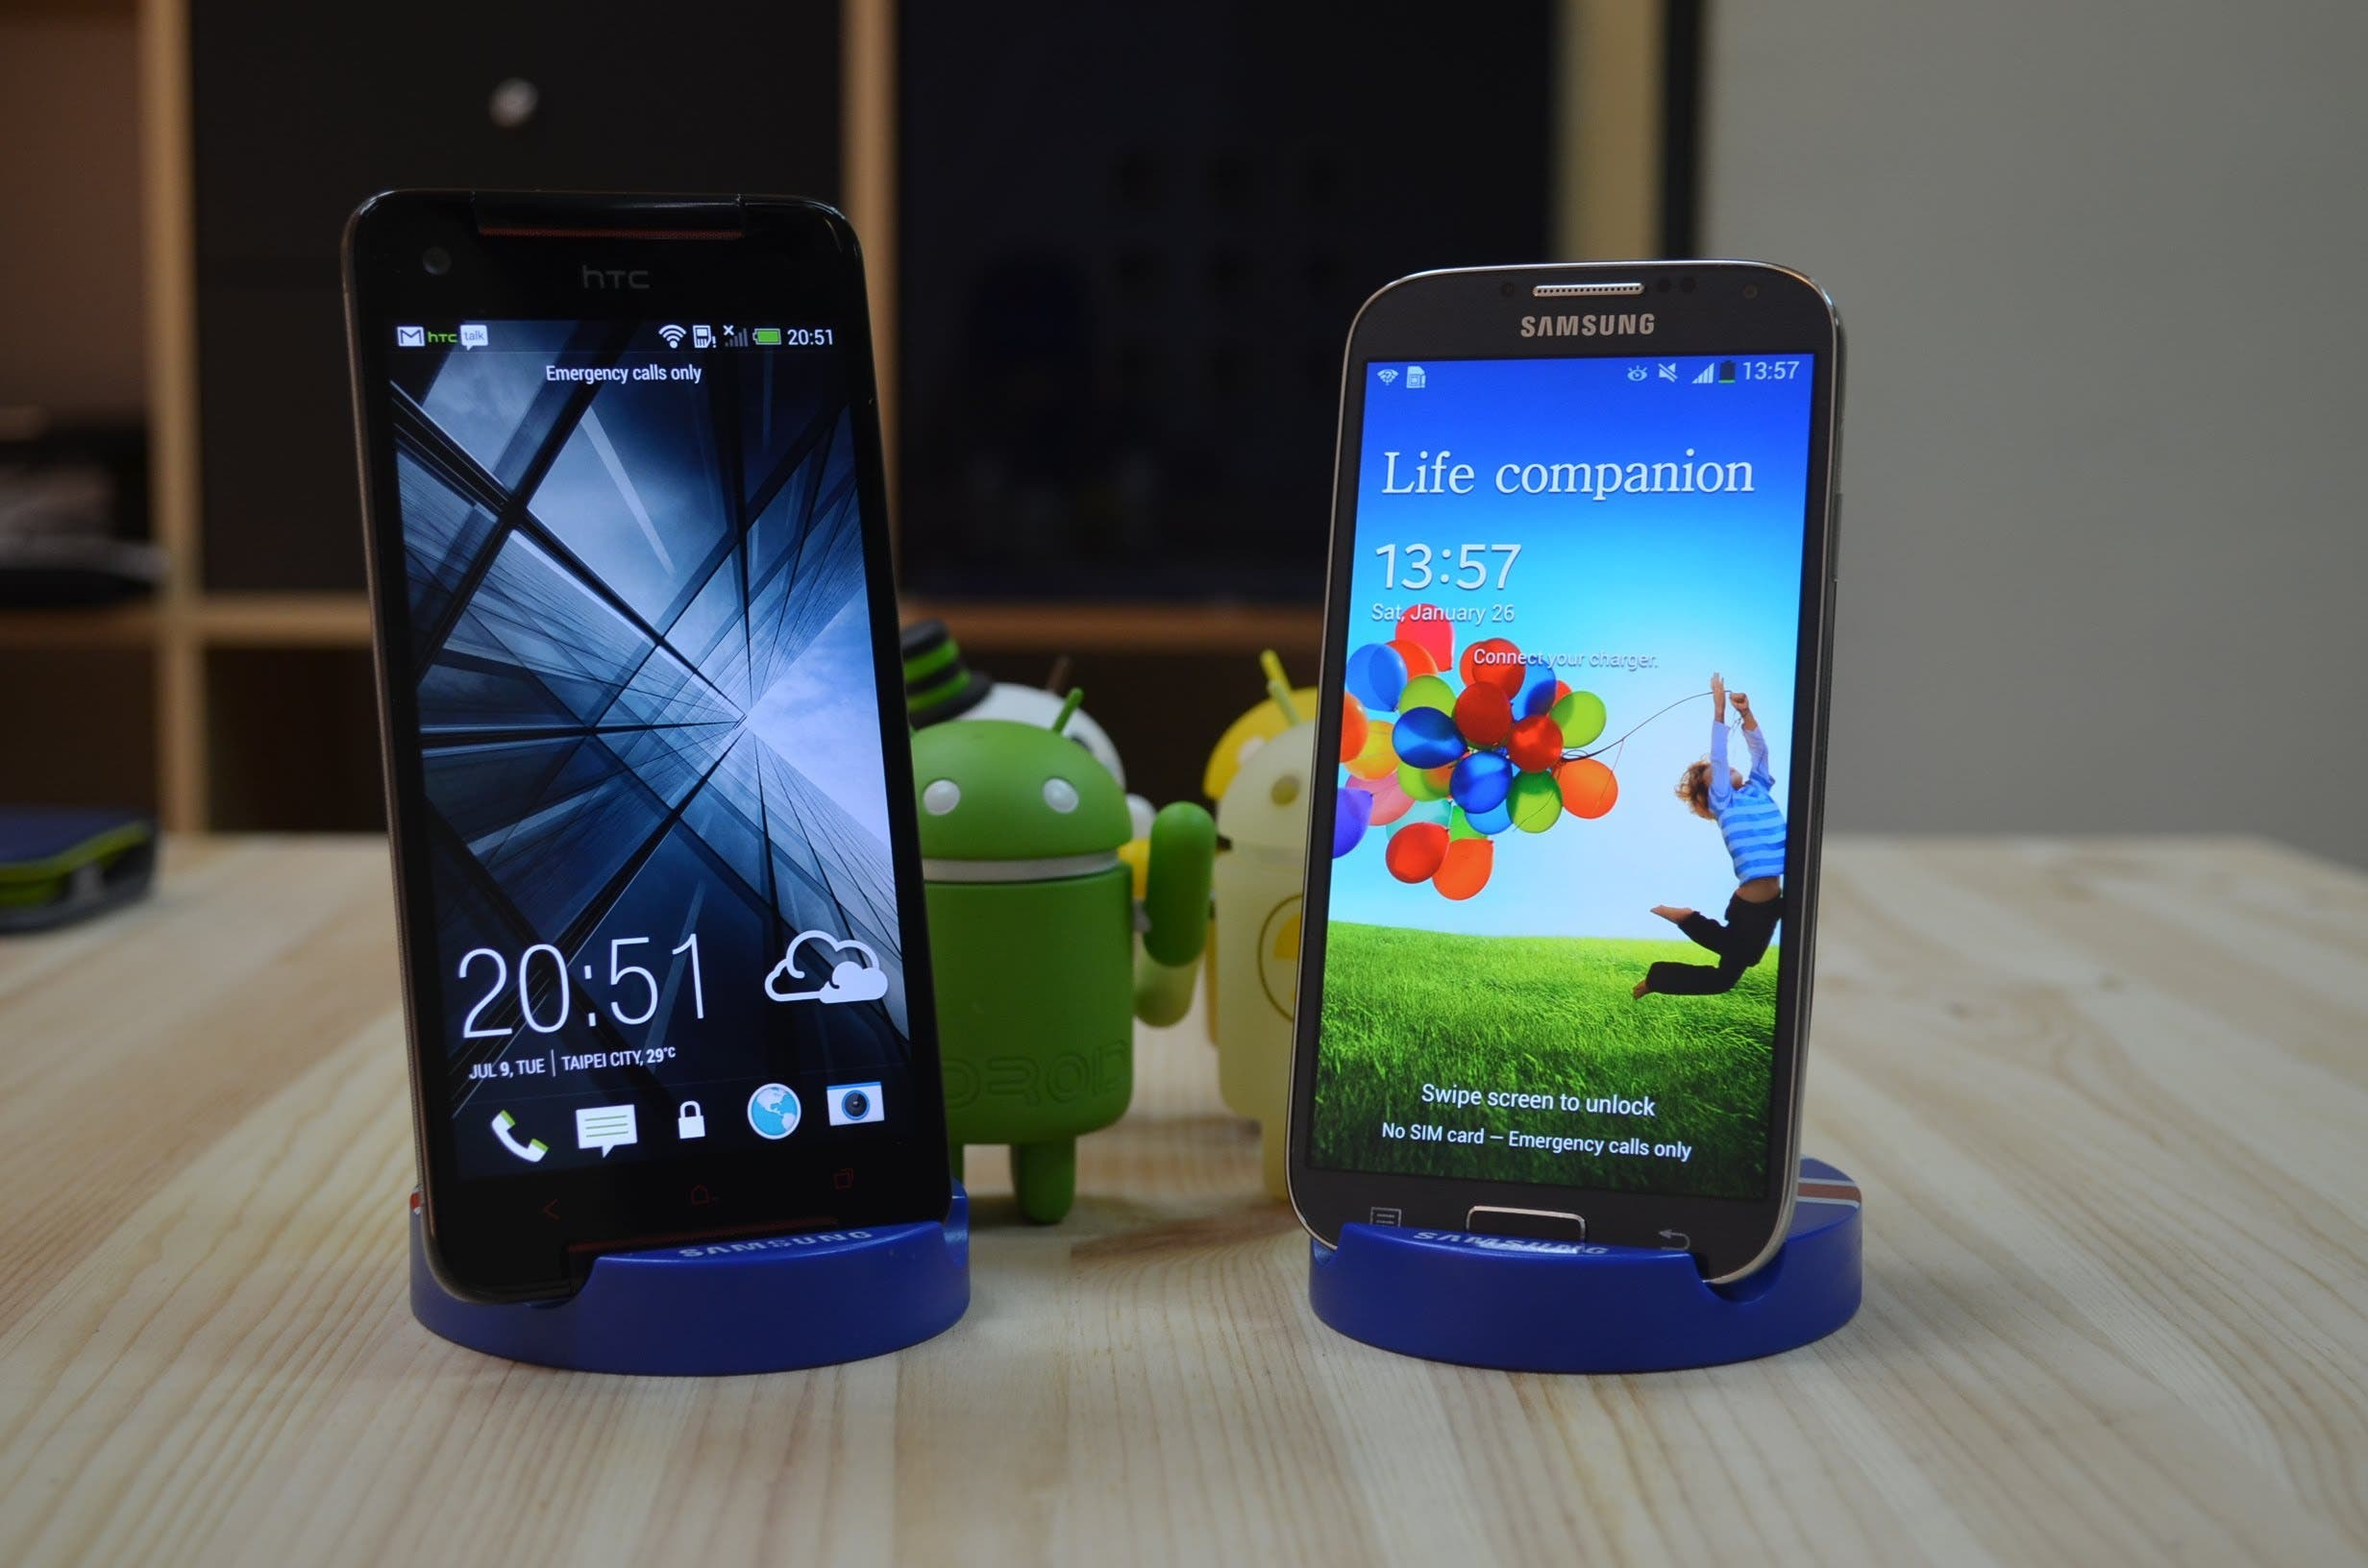 Galaxy S4 vs Butterfly S